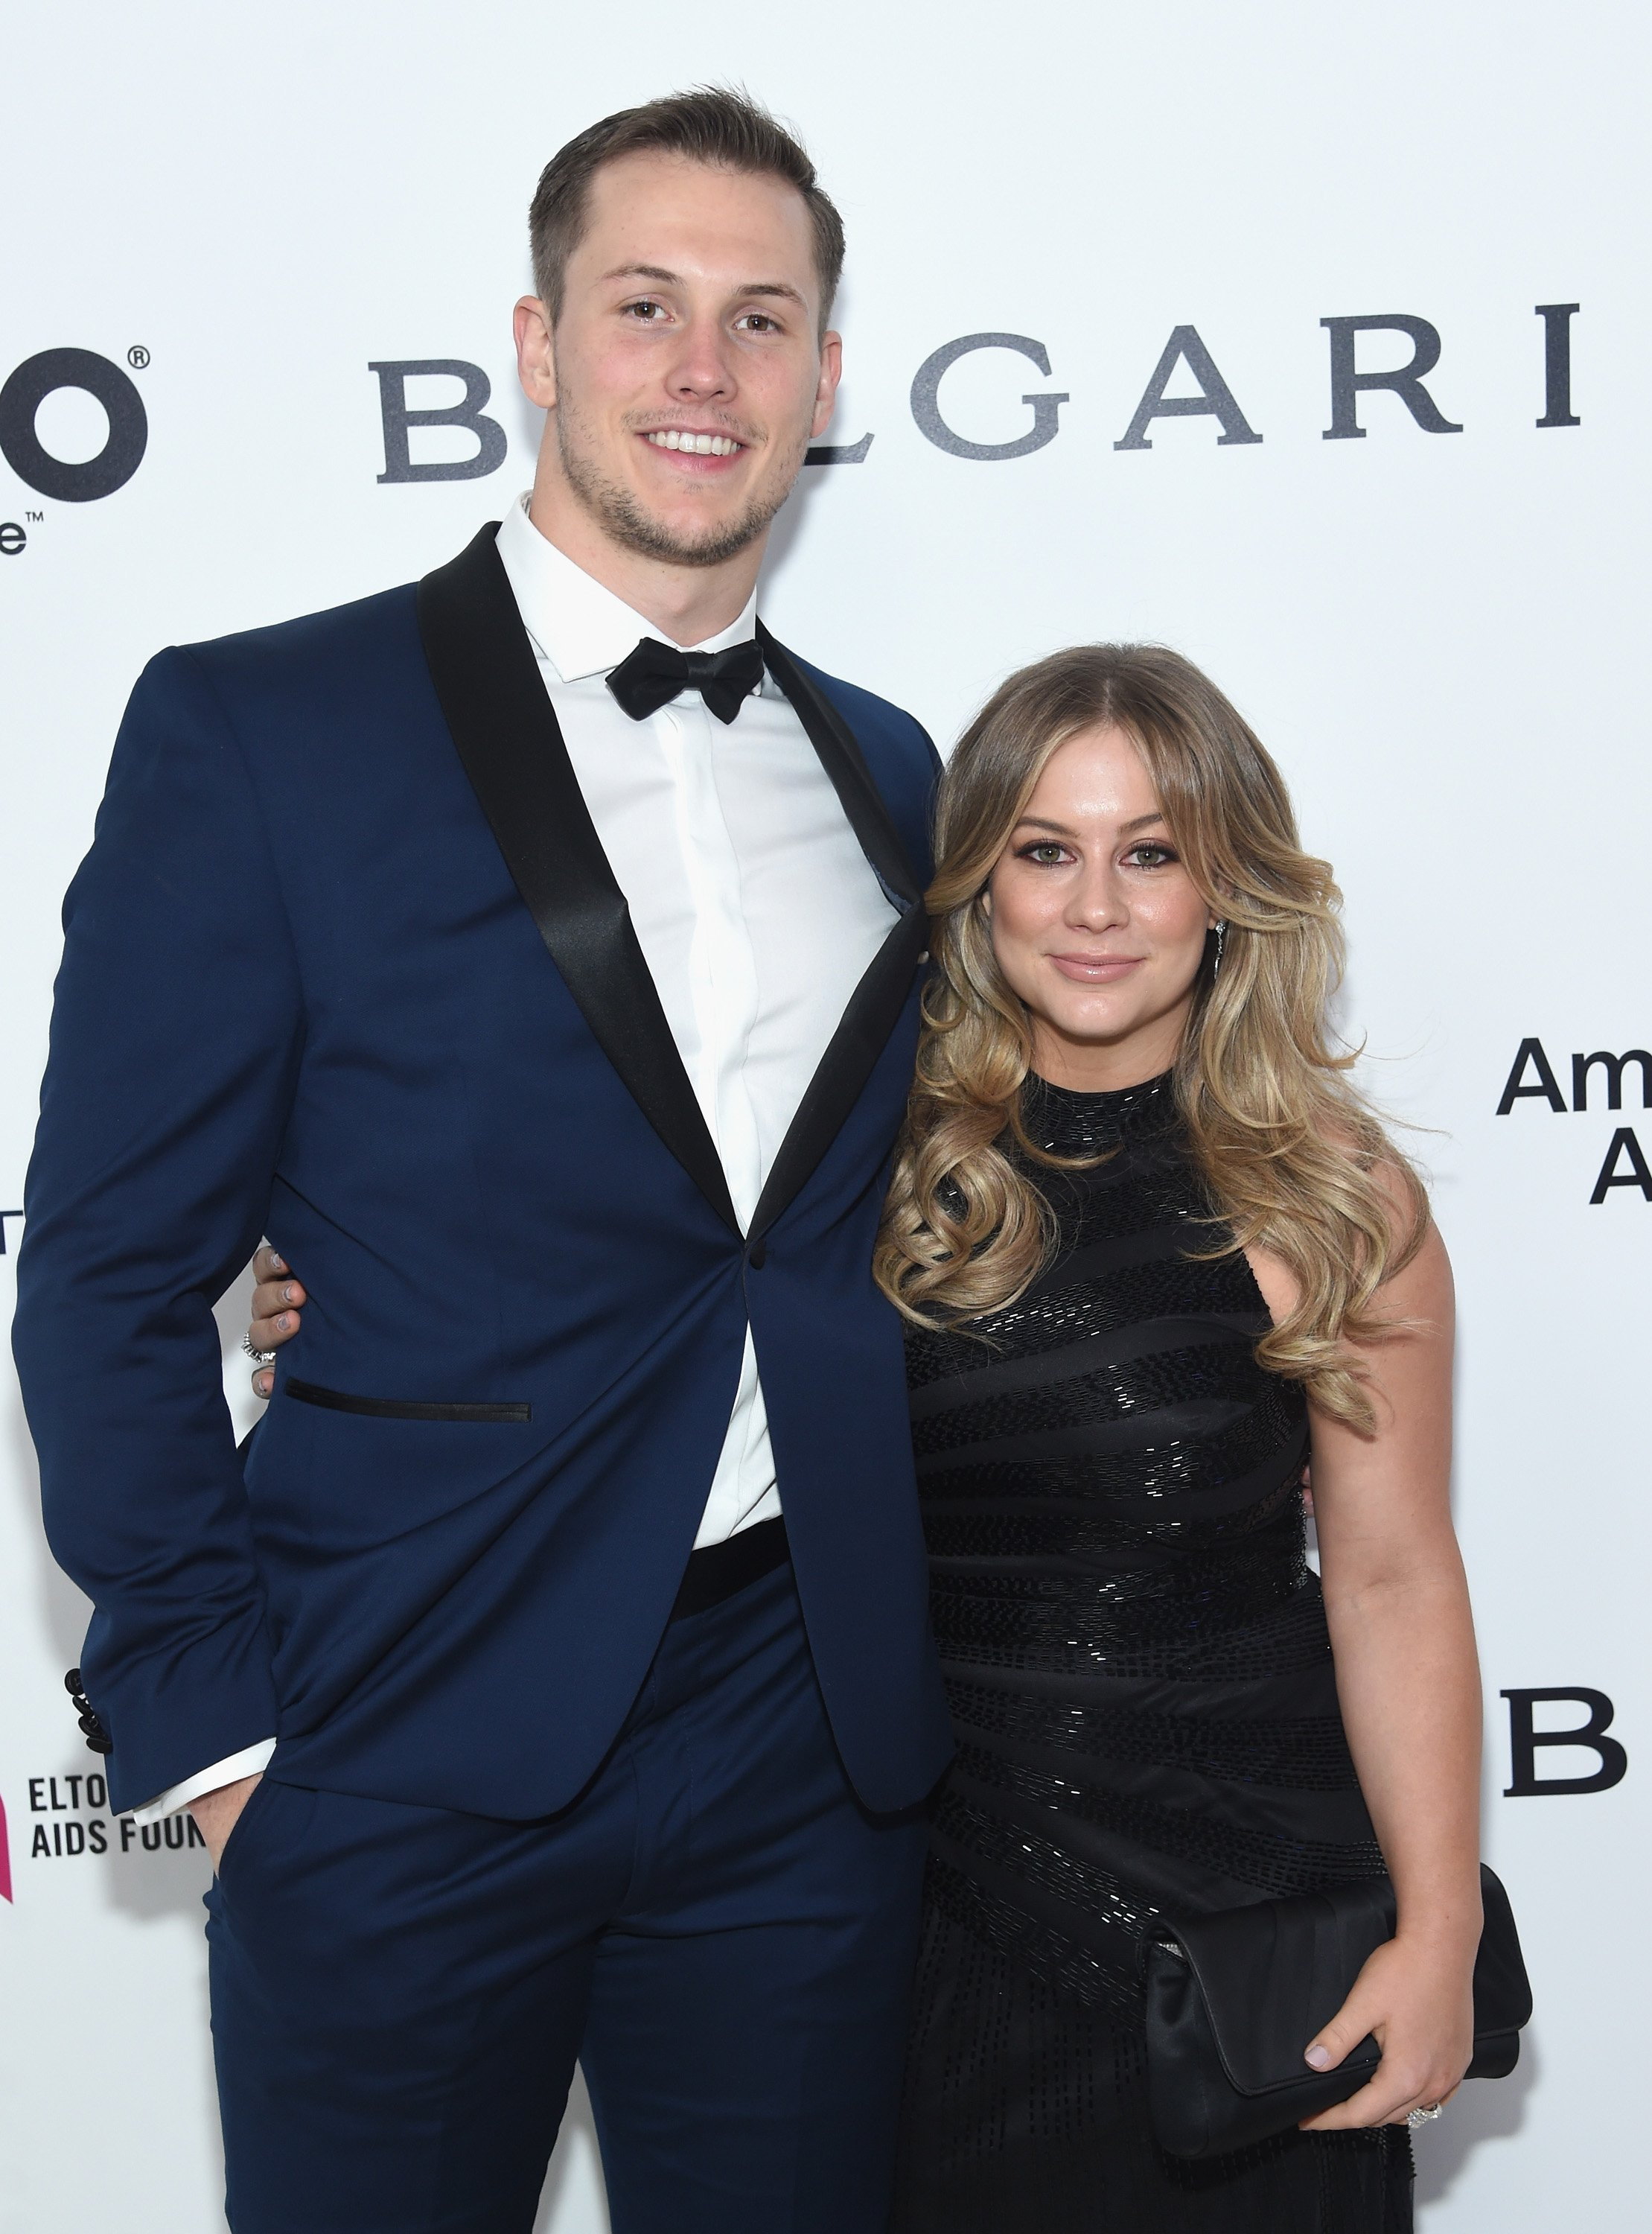 Olympic Gymnast Shawn Johnson and Andrew East attend the 25th Annual Elton John AIDS Foundation's Academy Awards Viewing Party at The City of West Hollywood Park on February 26, 2017 in West Hollywood, California | Photo: Getty Images